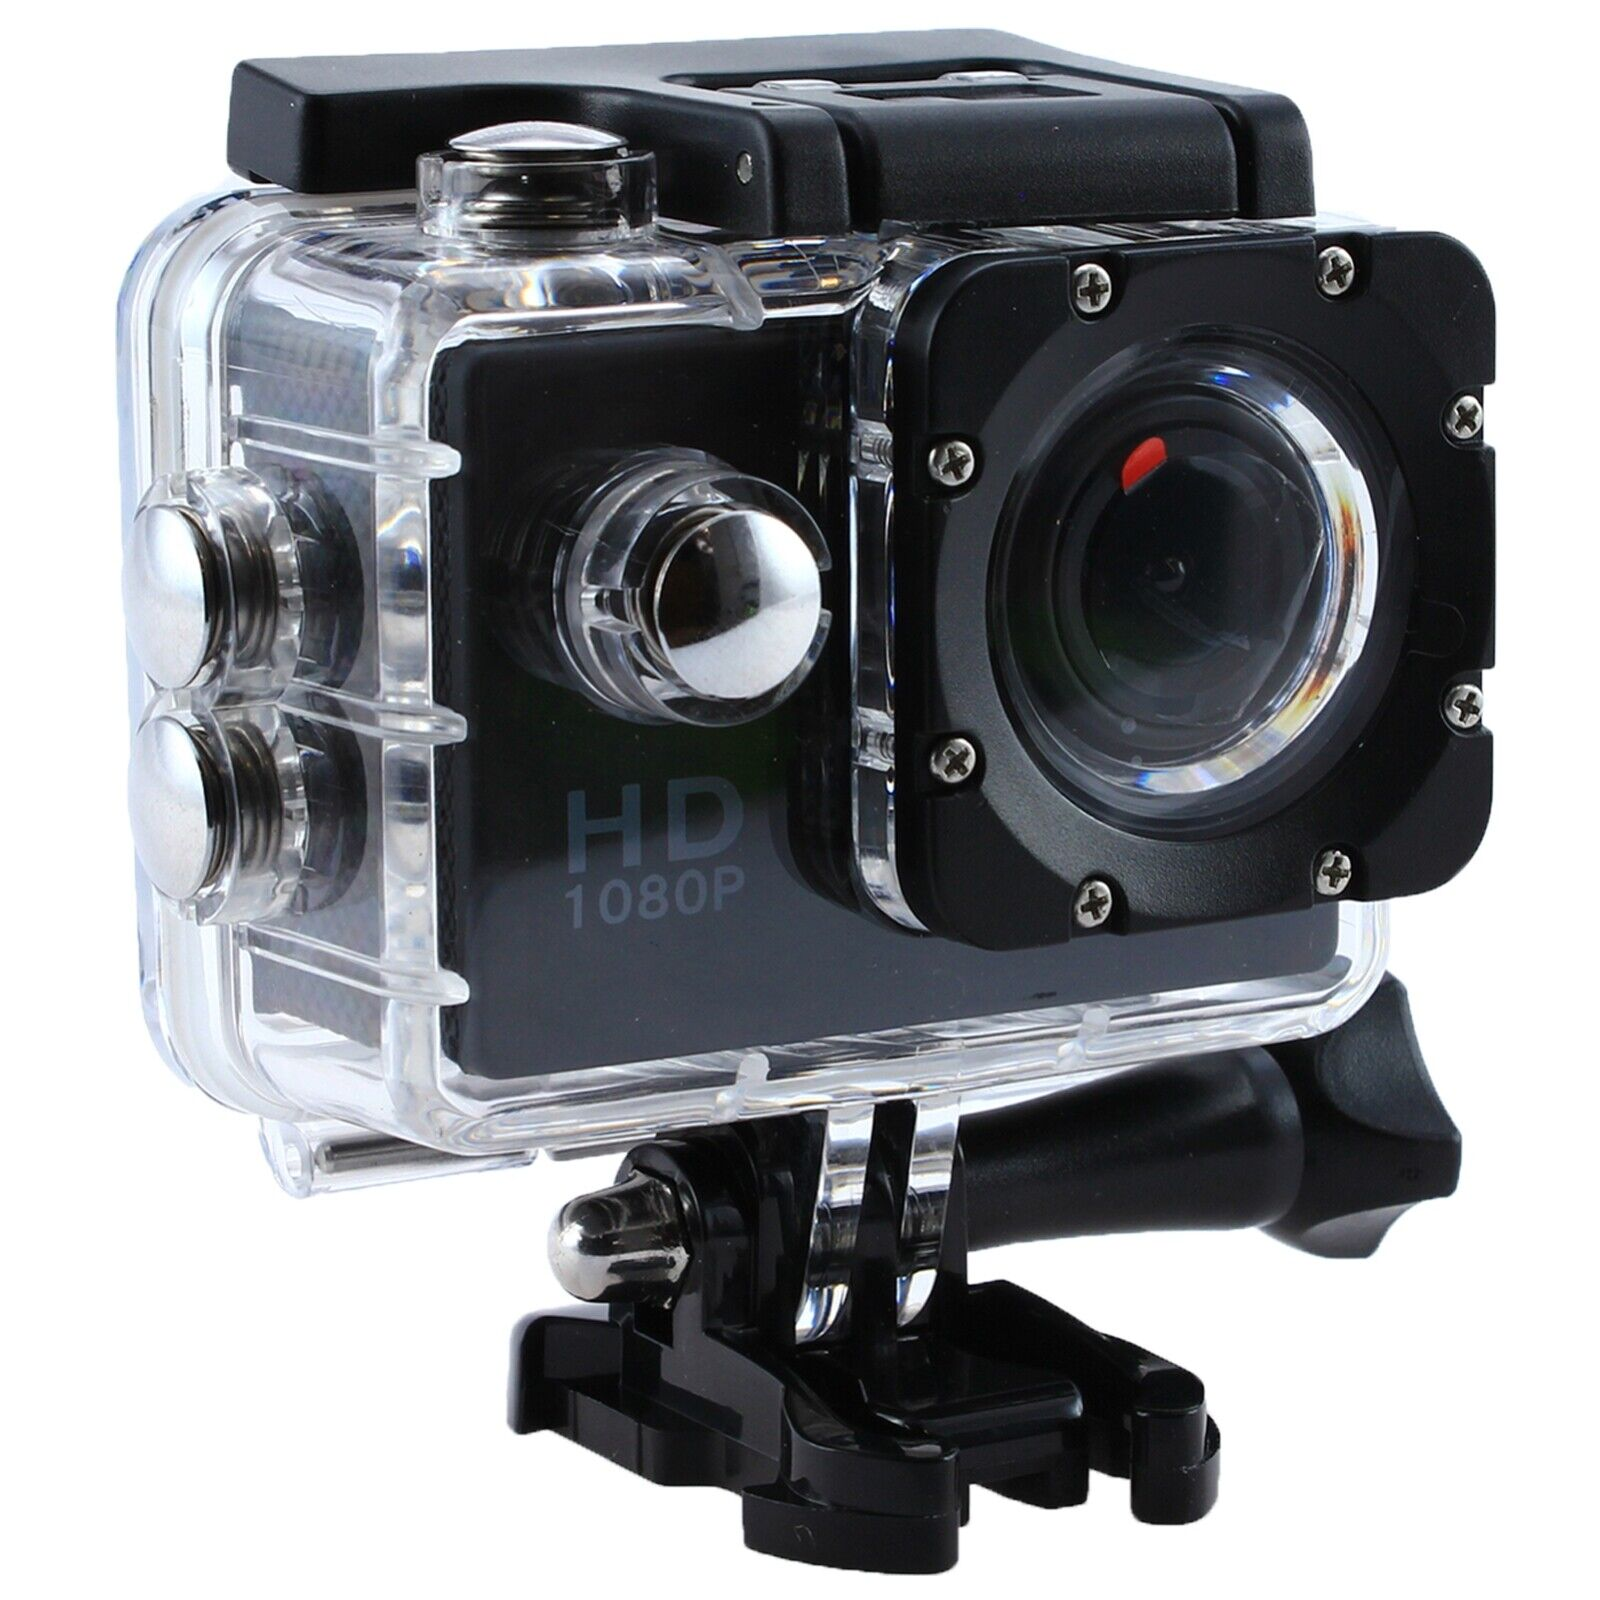 Full HD H.264 1080P Sports Camera SJ4000 5MP Car Cam Action Waterproof SPCA1520 Featured